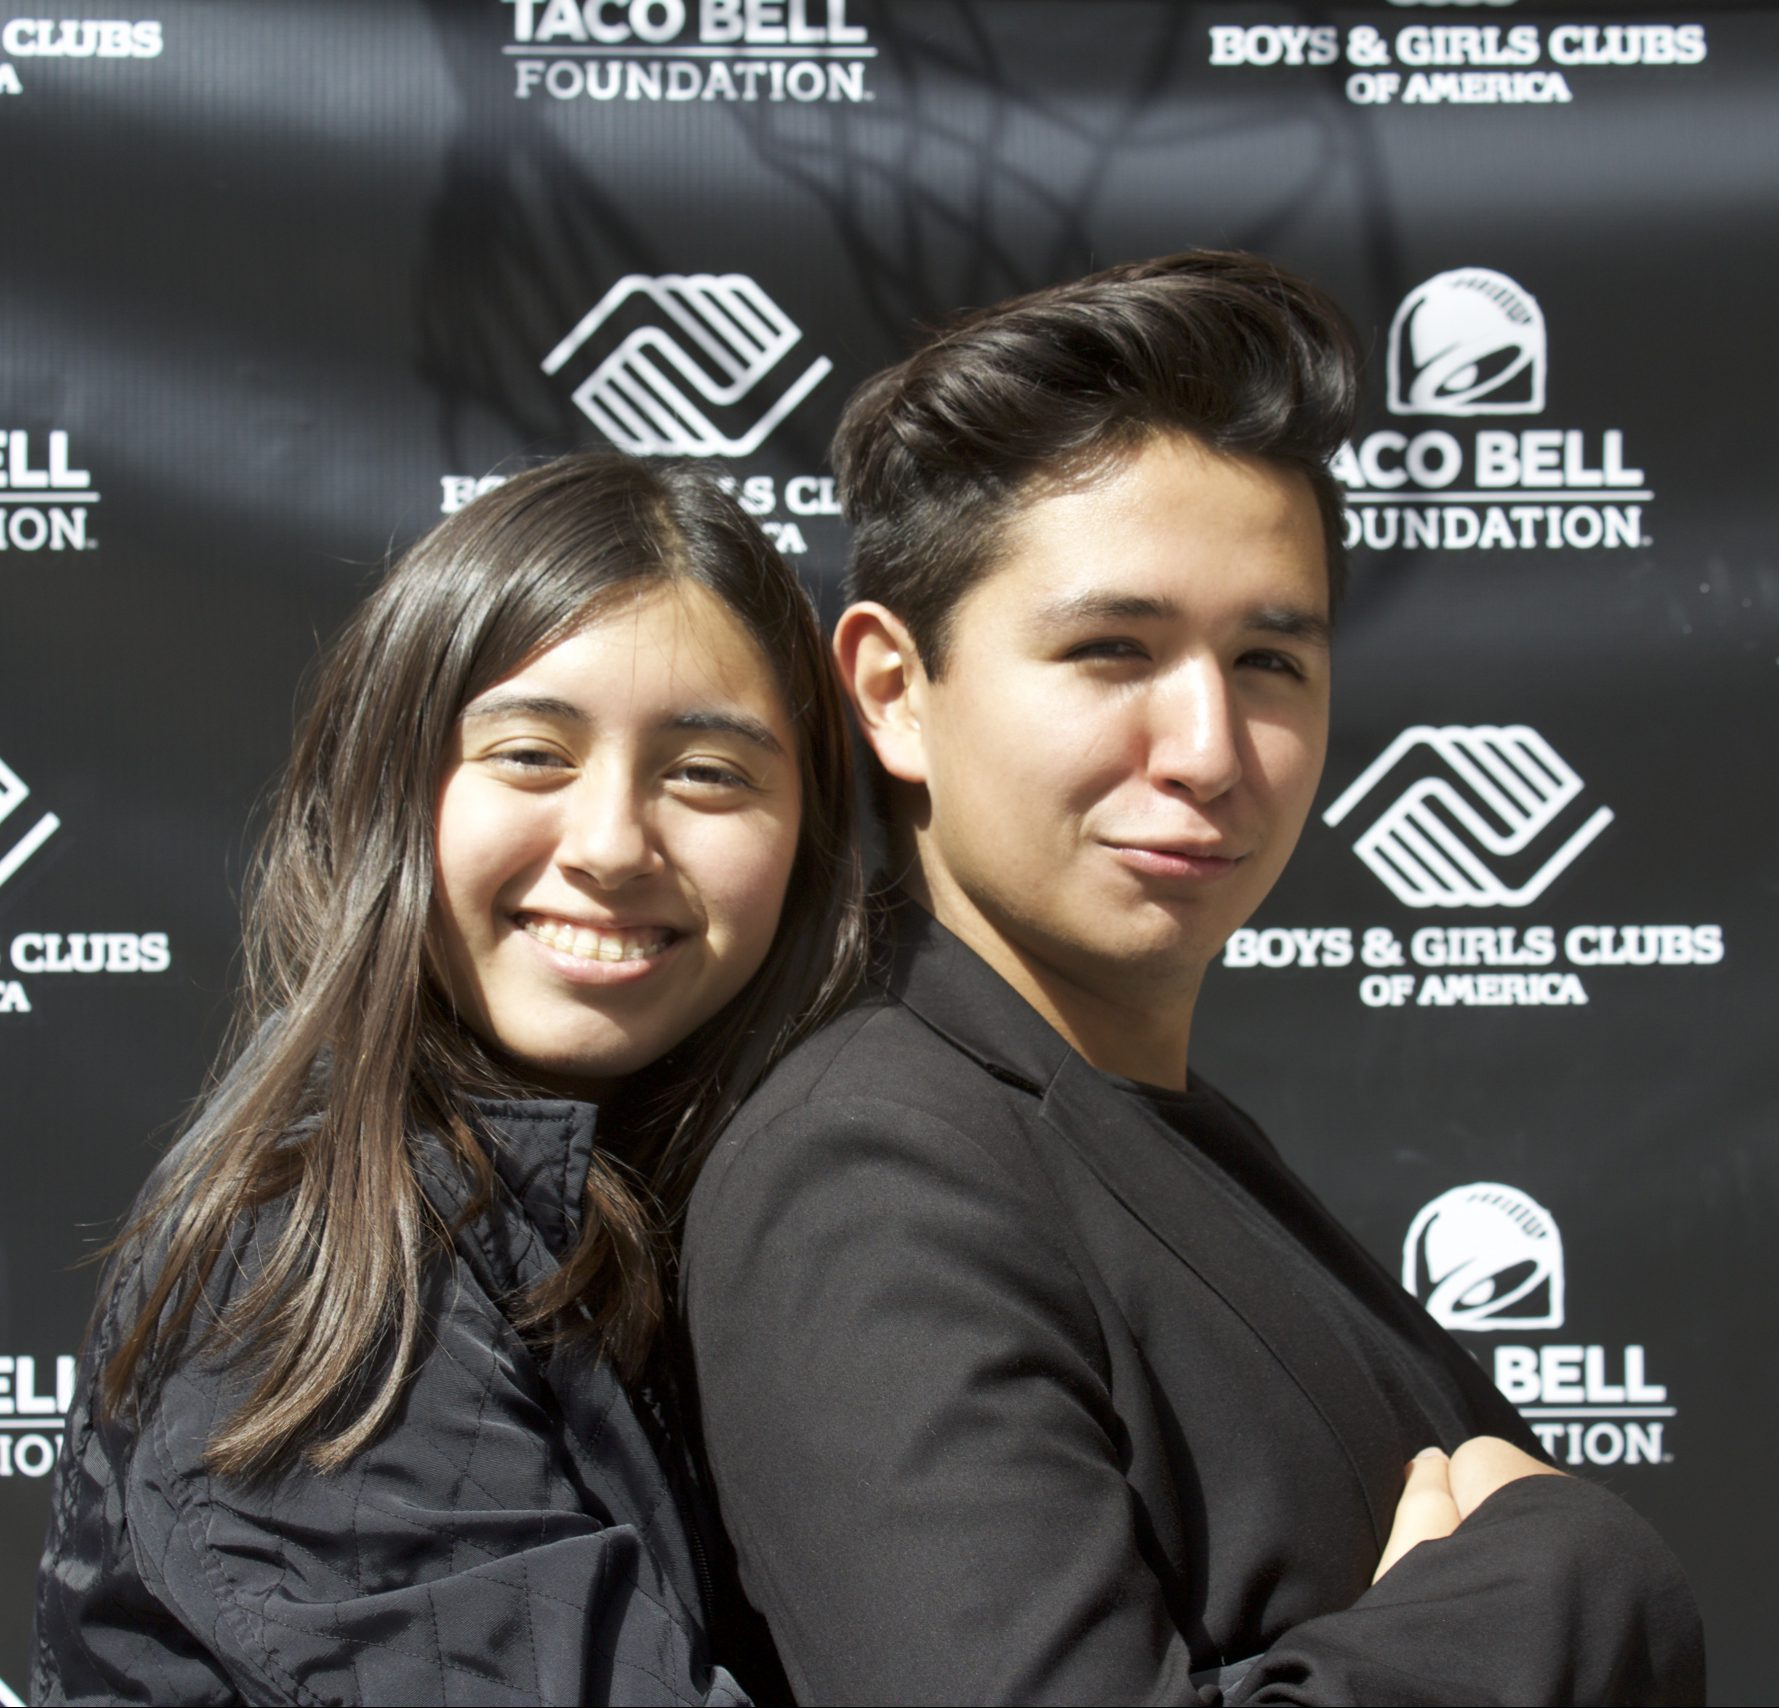 boy and girl in front of event logo backdrop